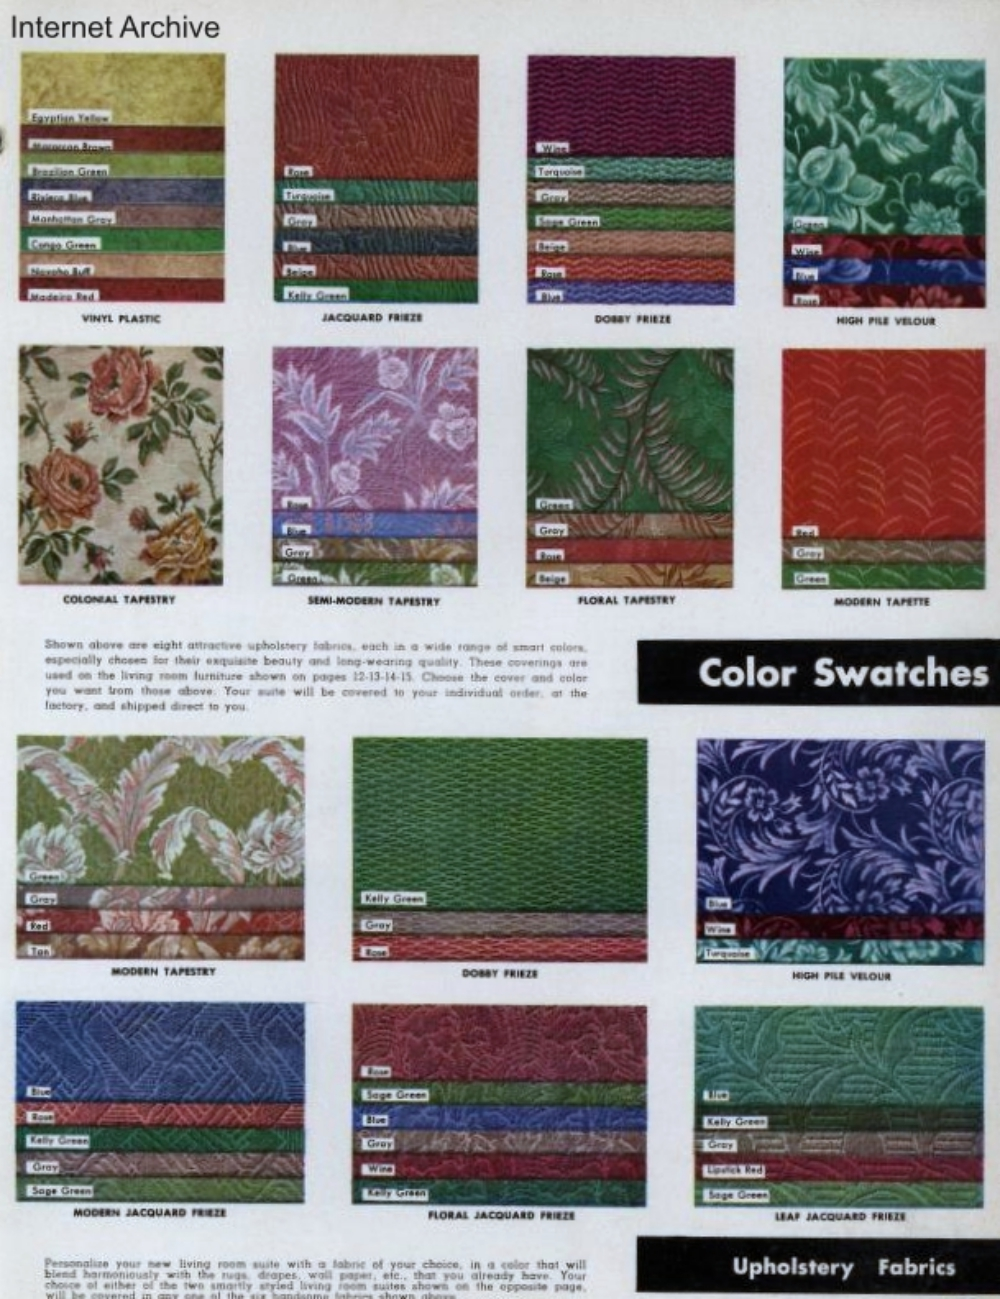 1949 Upholstery Fabric Swatches